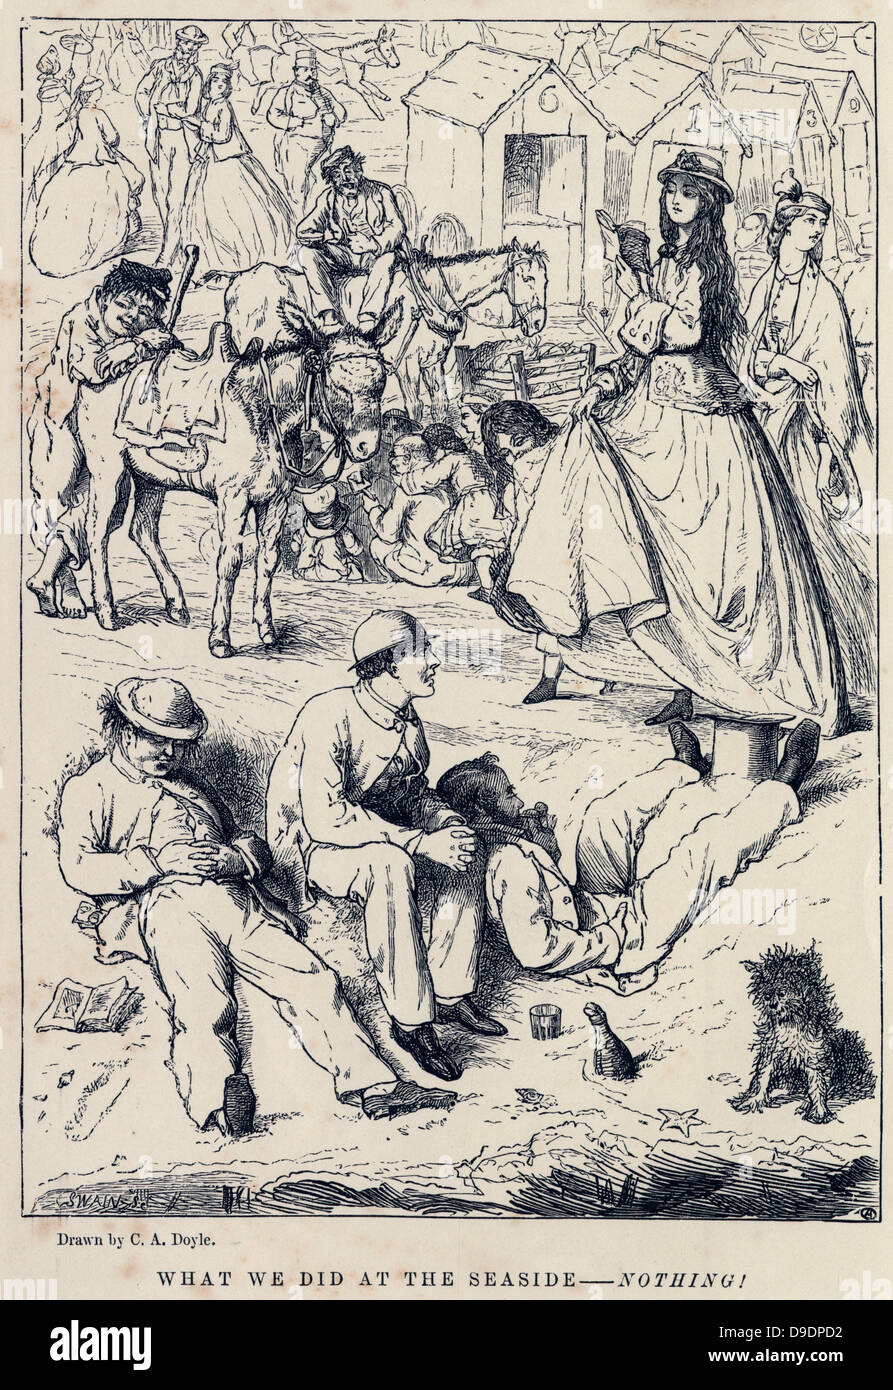 What we did at the seaside  -  Nothing.  Cartoon of 1882 - Stock Image